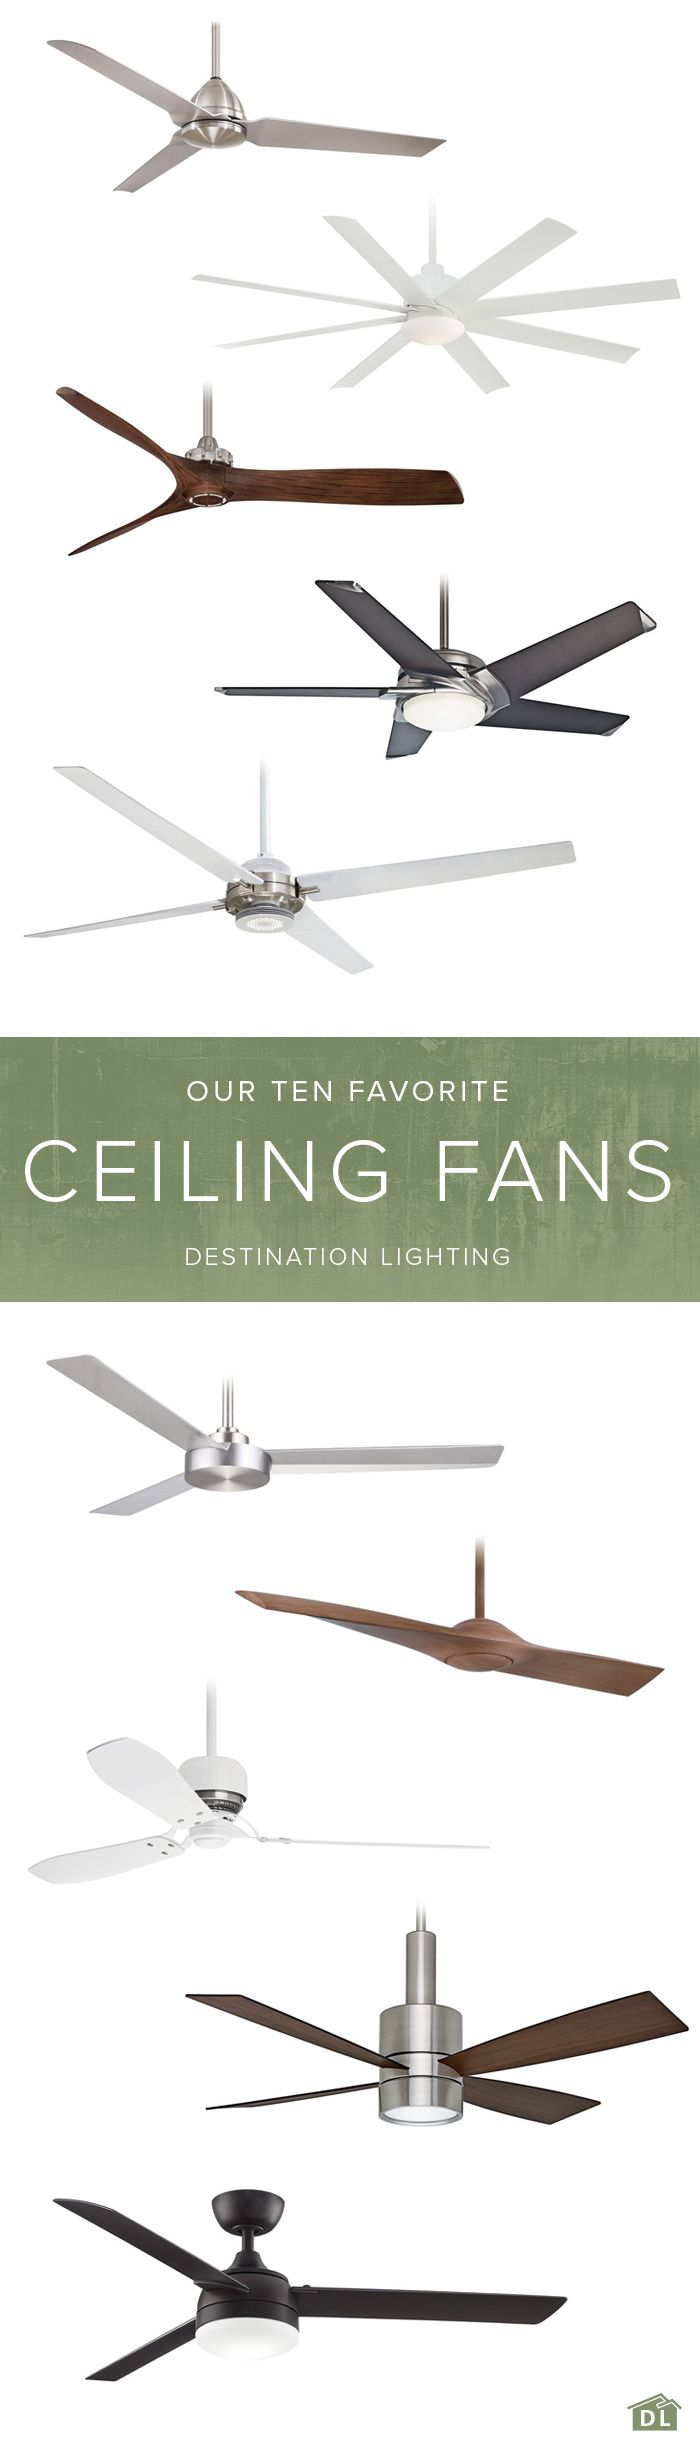 Fan Wiring Diagram Litex Hunter Fans 8 Best Ceiling Images On Pinterest Blankets Ceilings And Get Prepared For That Summer Heat With These Ten Gorgeous Check Out Our